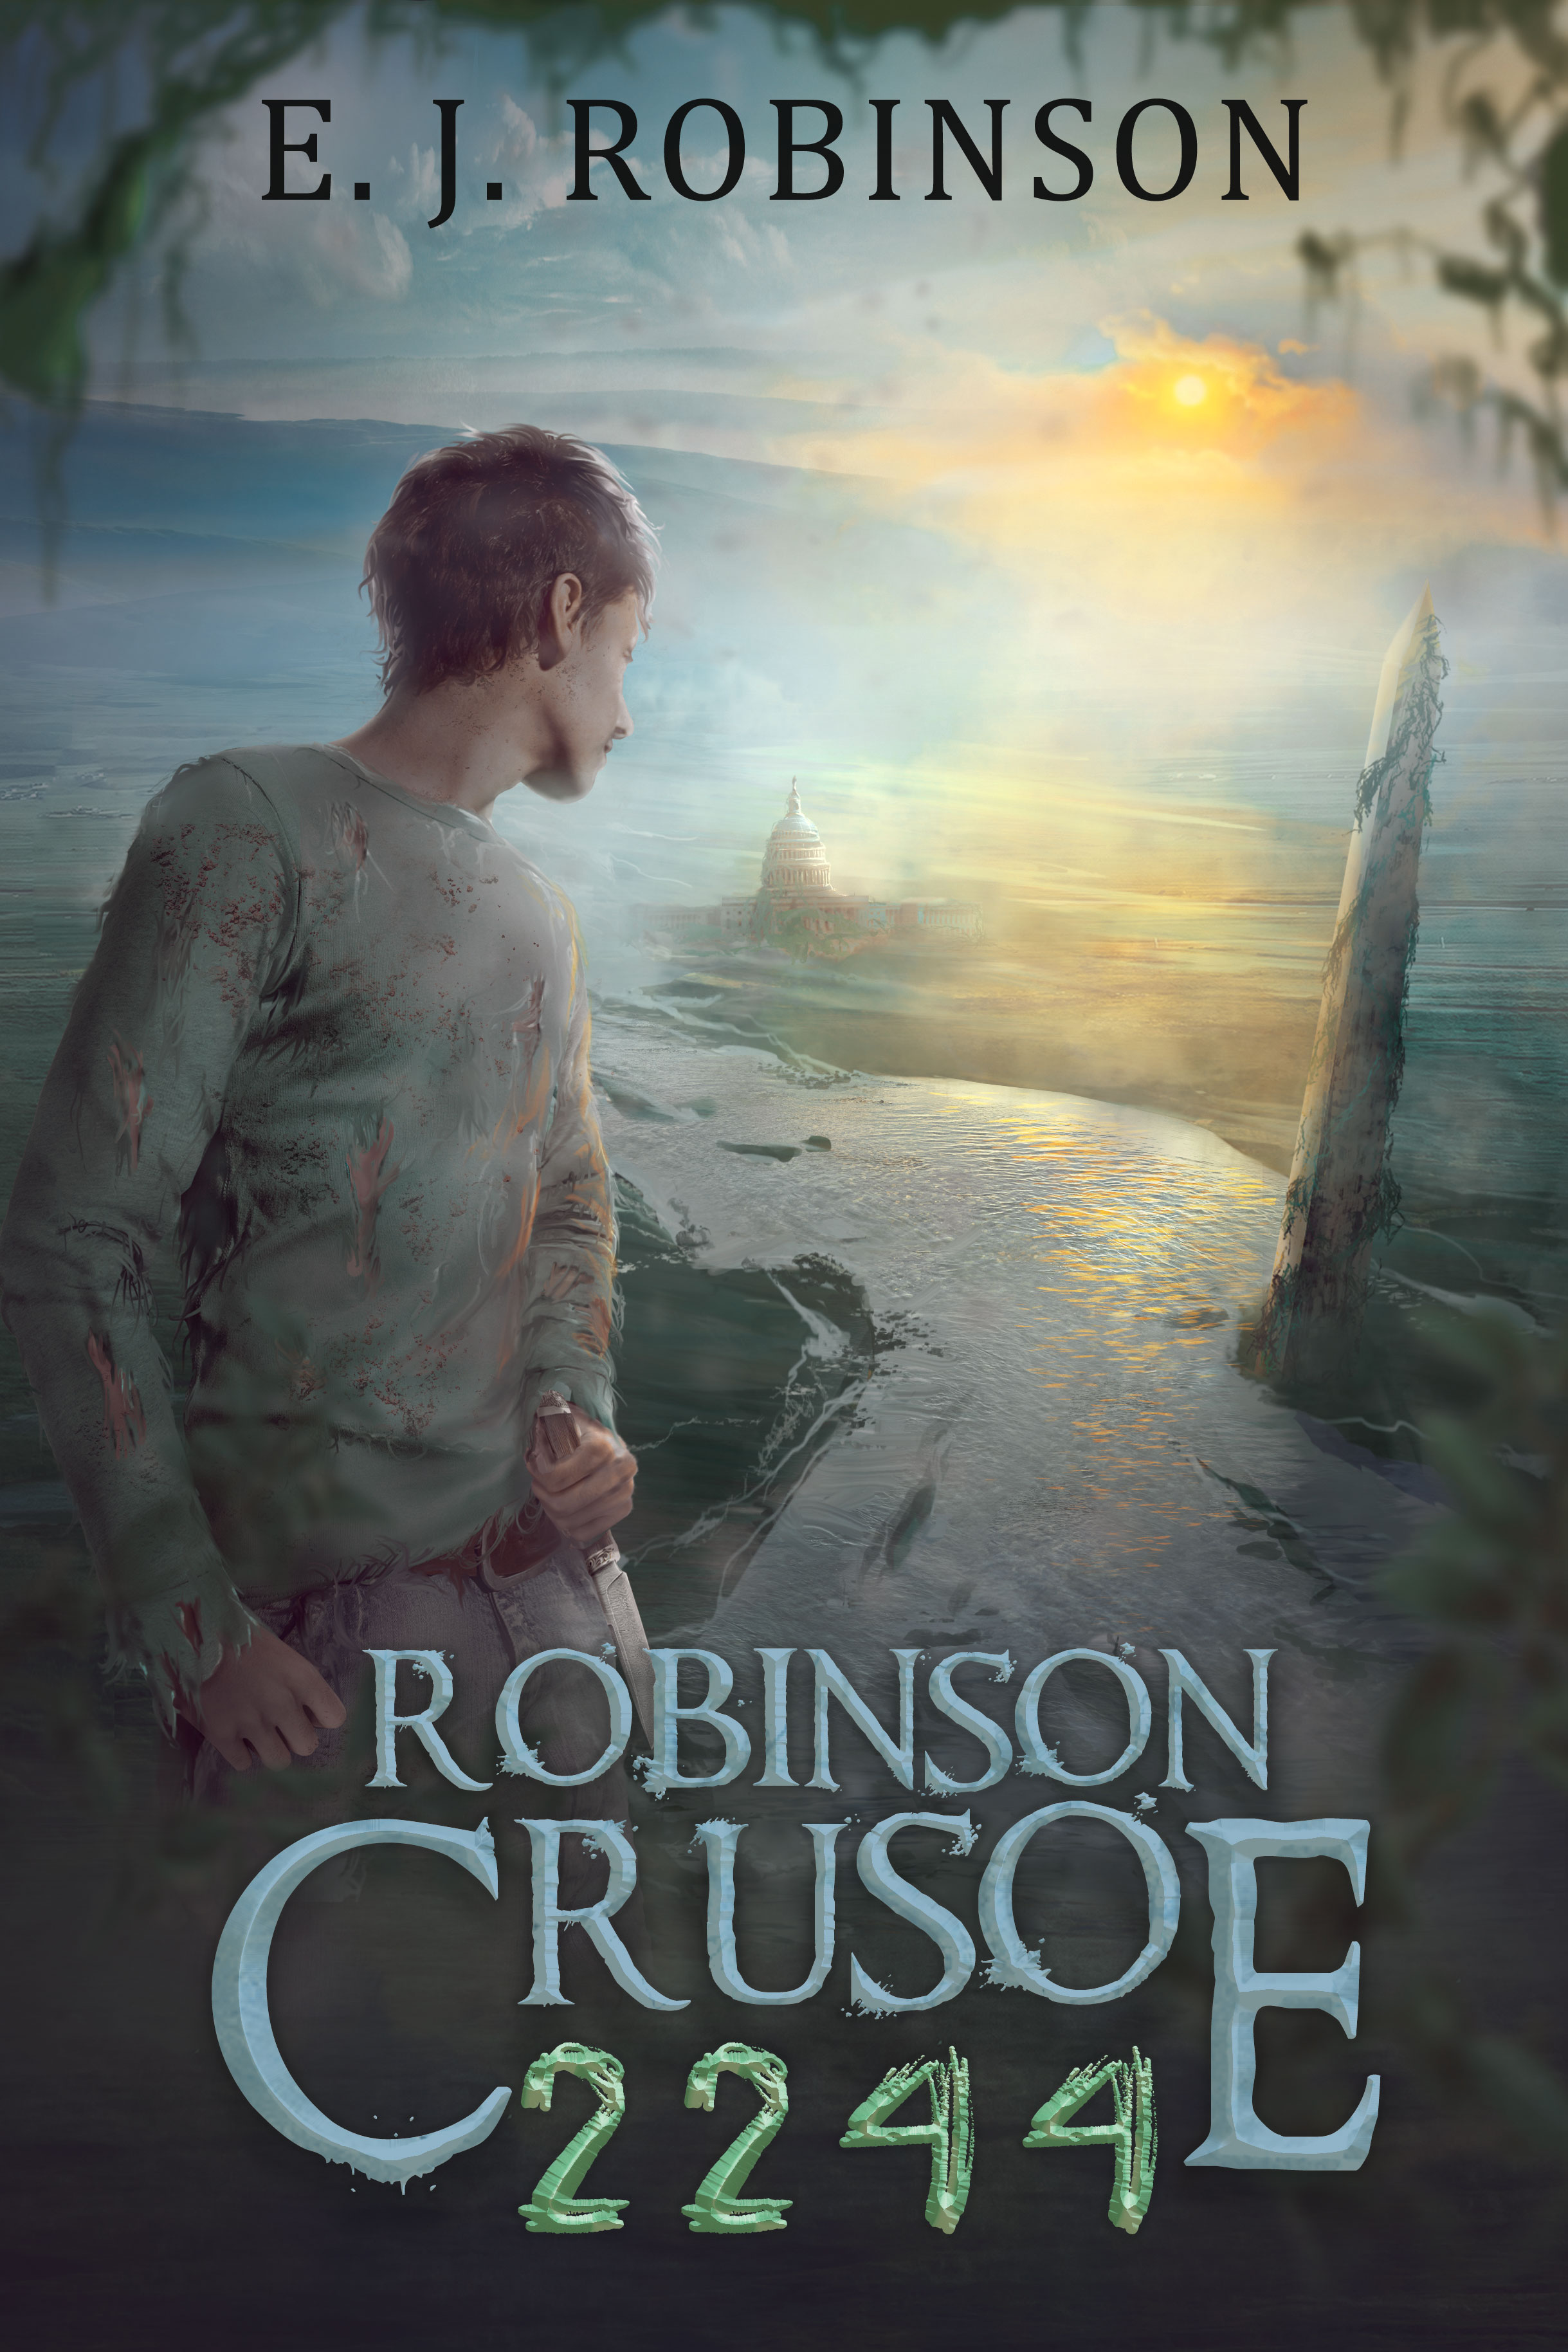 Robinson Crusoe 2244 - Two centuries after mankind drove itself to the brink of extinction, a new civilization rises from the ashes of what was once Great Britain. But when deadly strife breaks out among their ranks, the teenage son of one prominent family finds himself fleeing in the dead of night only to wind up shipwrecked on the forbidden continent of America. Armed with only his wit and the most unexpected of allies, the teenager struggles to survive in a wasteland filled with unspeakable horrors and in the end must uncover the one secret that can save his own people or spell doom for mankind forev